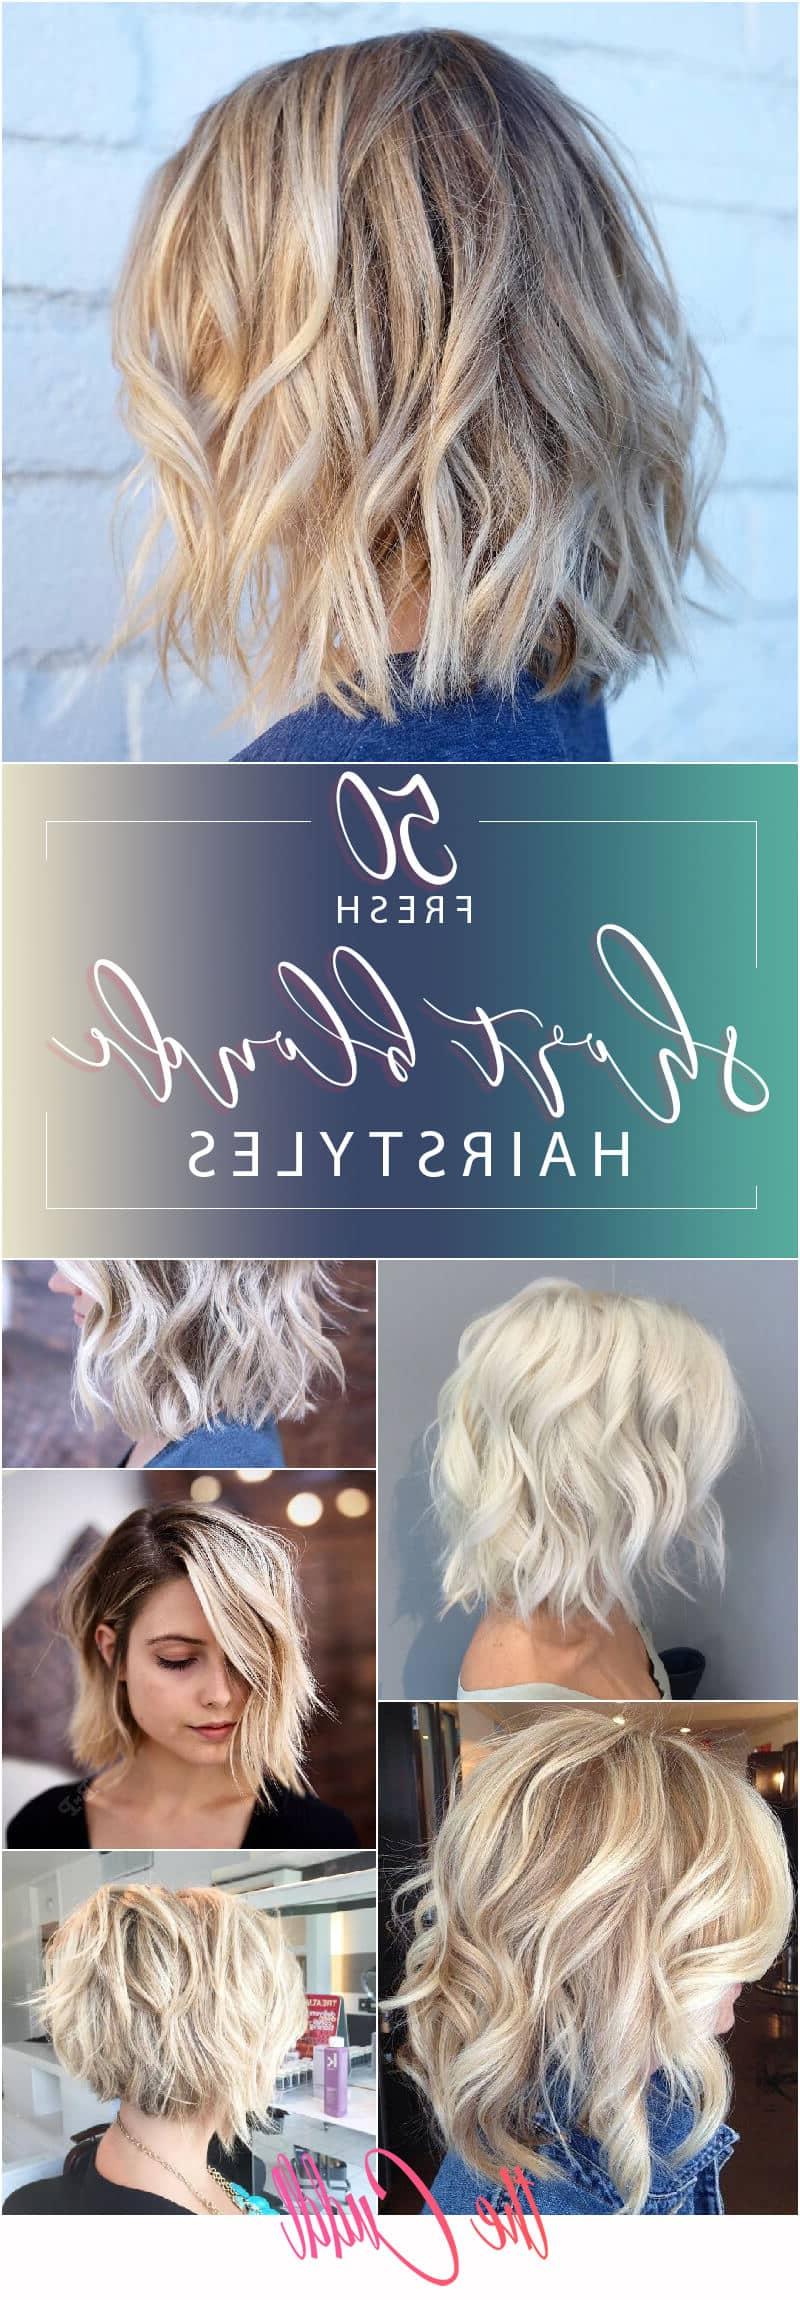 50 Fresh Short Blonde Hair Ideas To Update Your Style In 2020 With Regard To Most Popular One Length Short Blonde Bob Hairstyles (View 8 of 20)